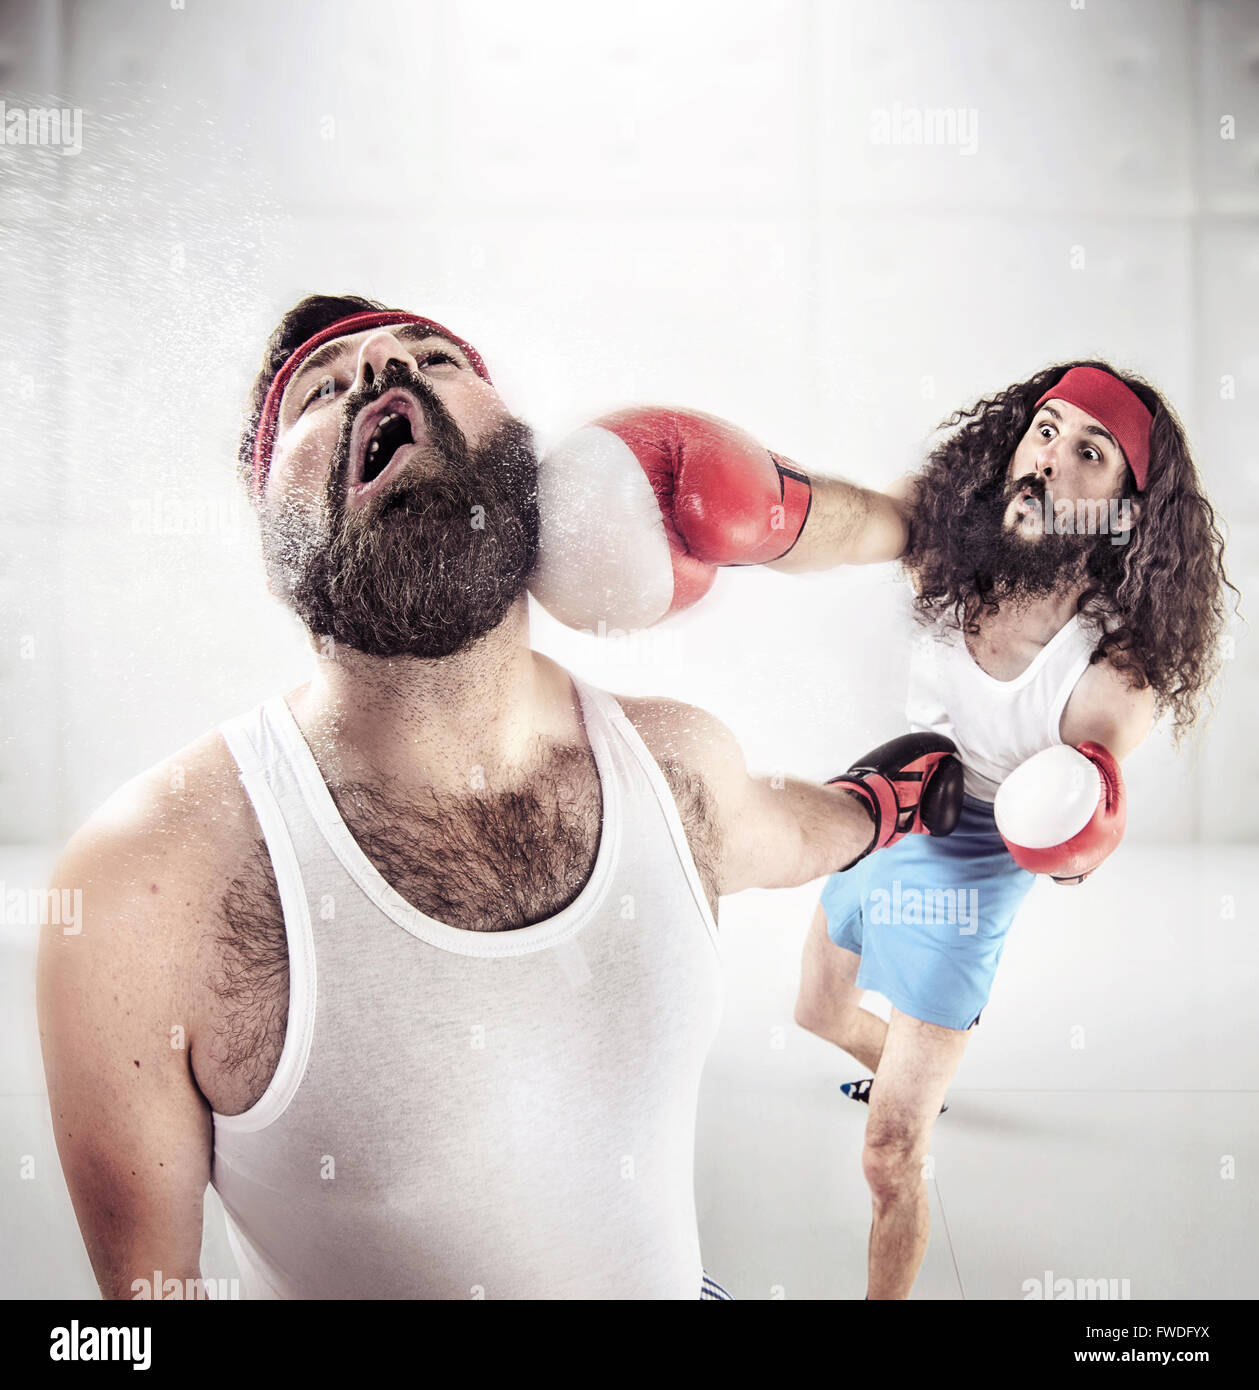 Two nerdy pals boxing on the ring - Stock Image